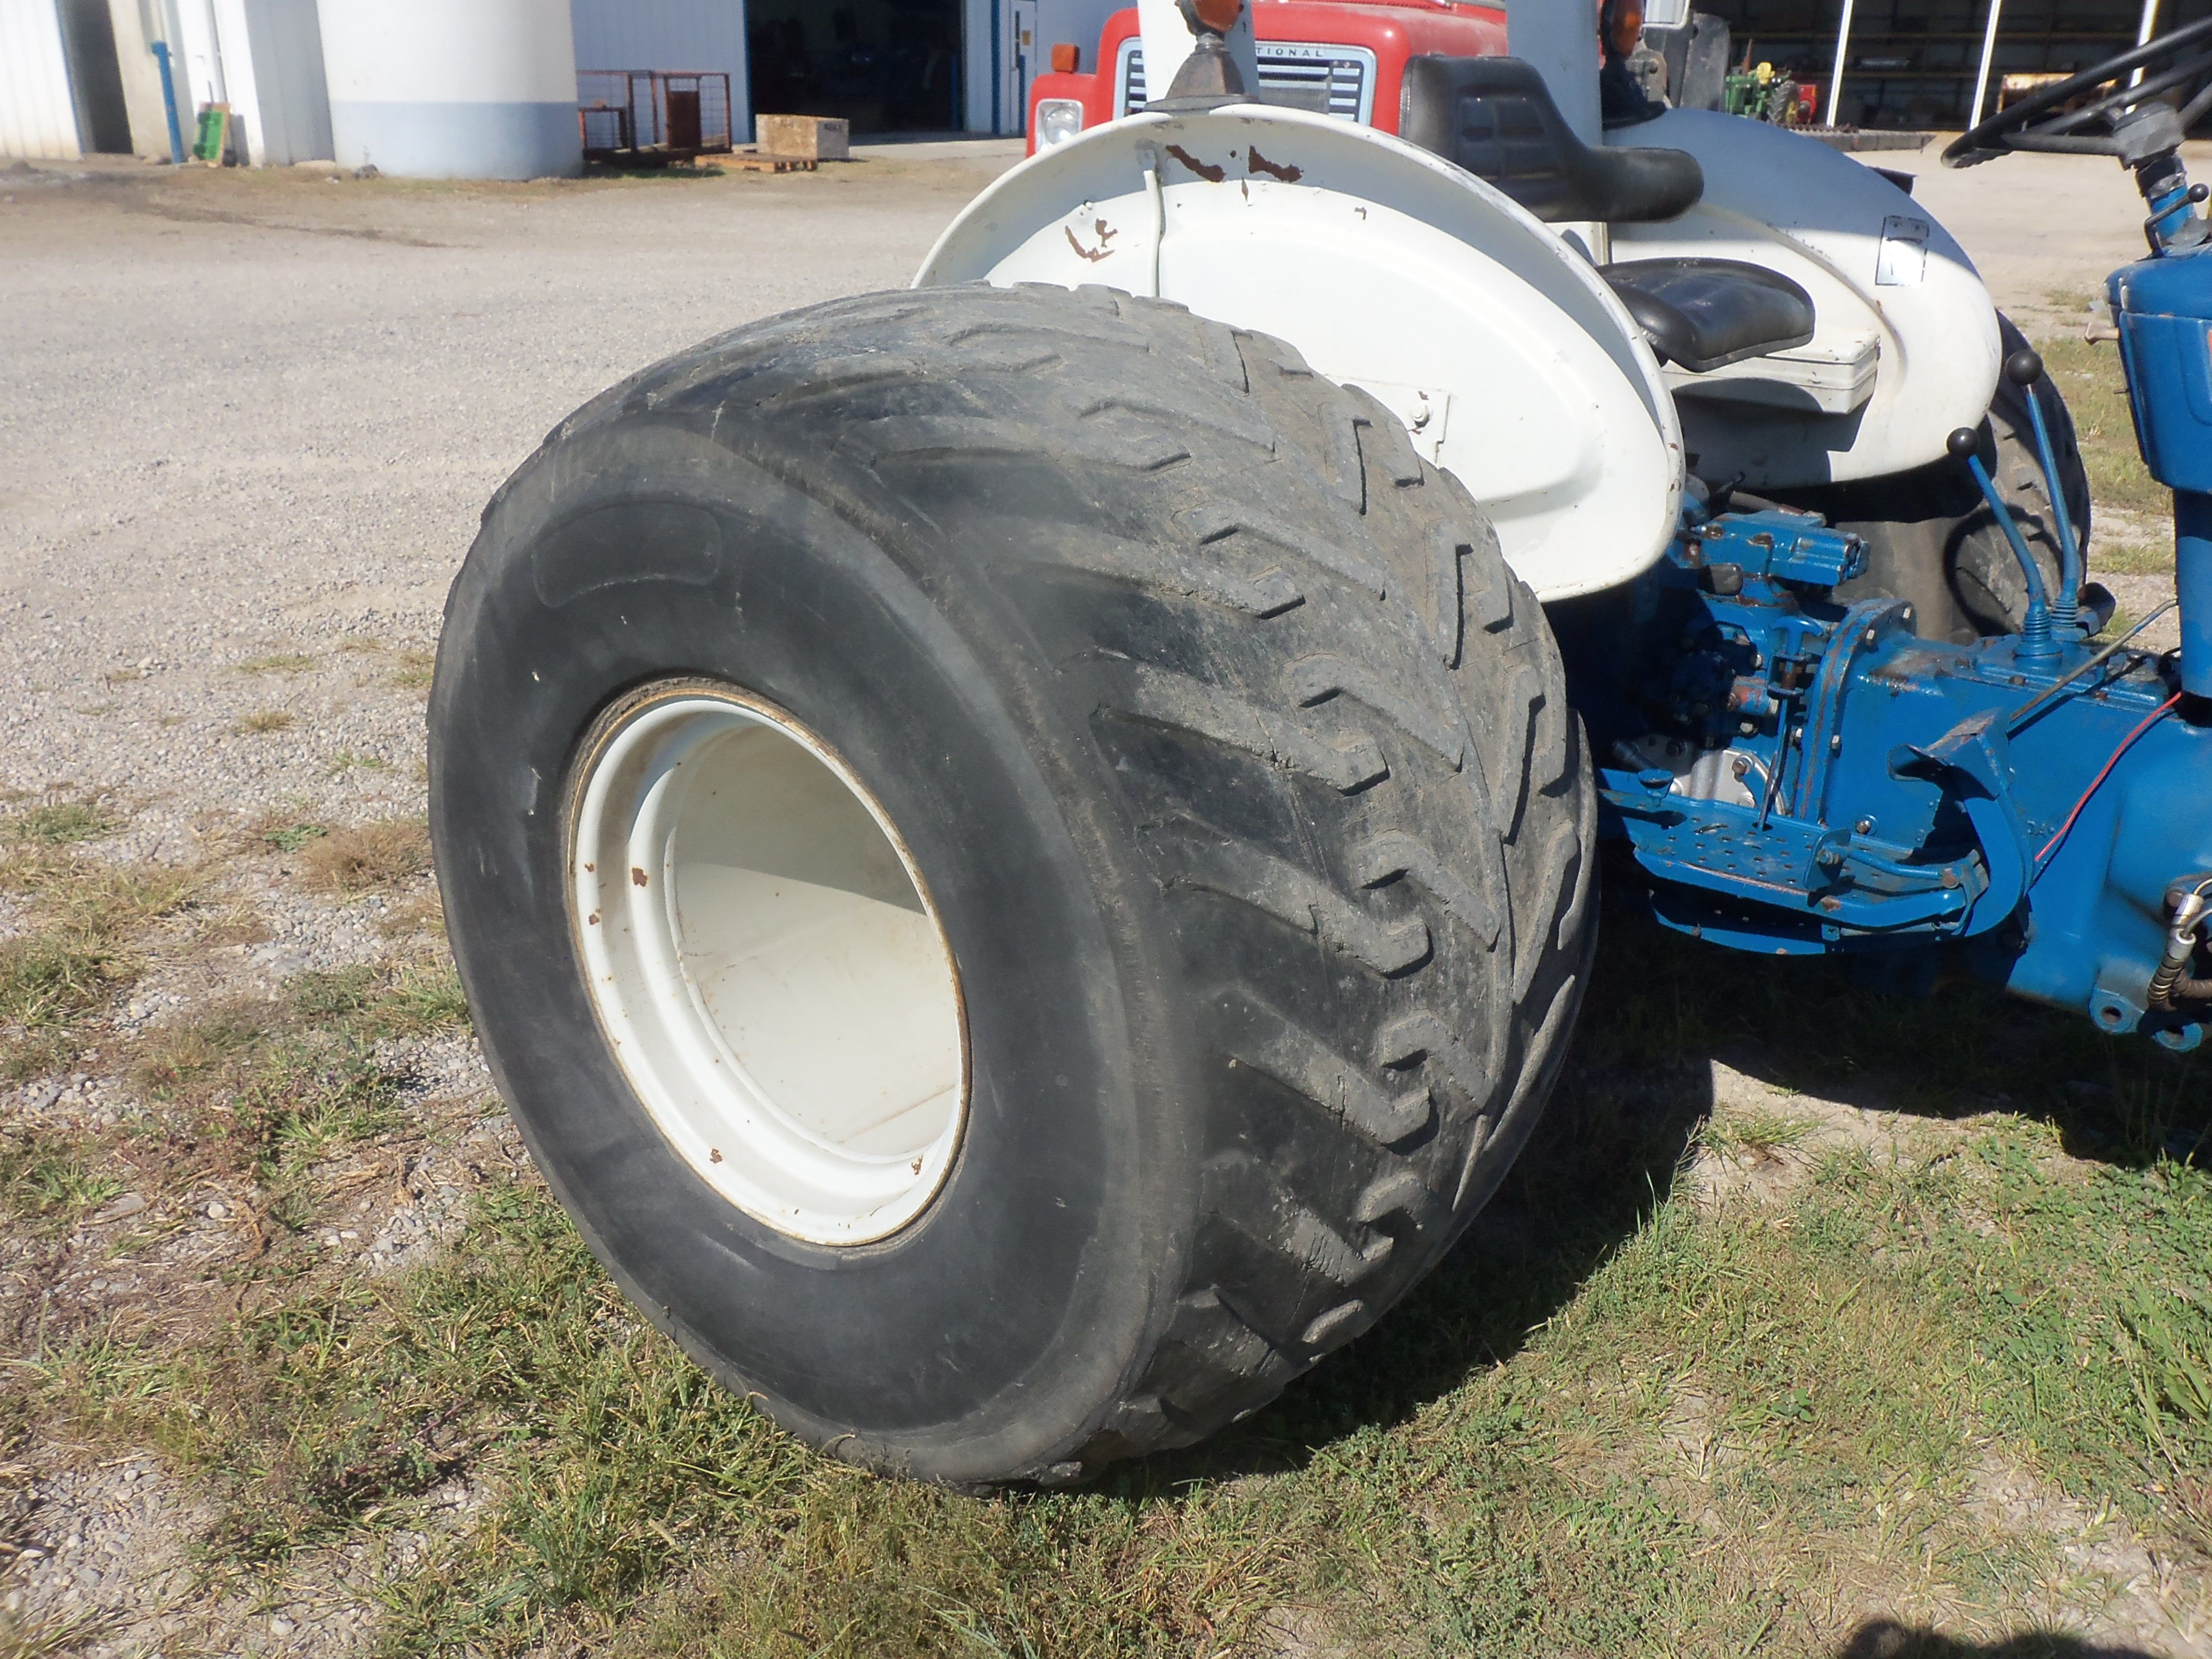 Ford Tractor Turf Tires : Large wide turf tire on ford tractors